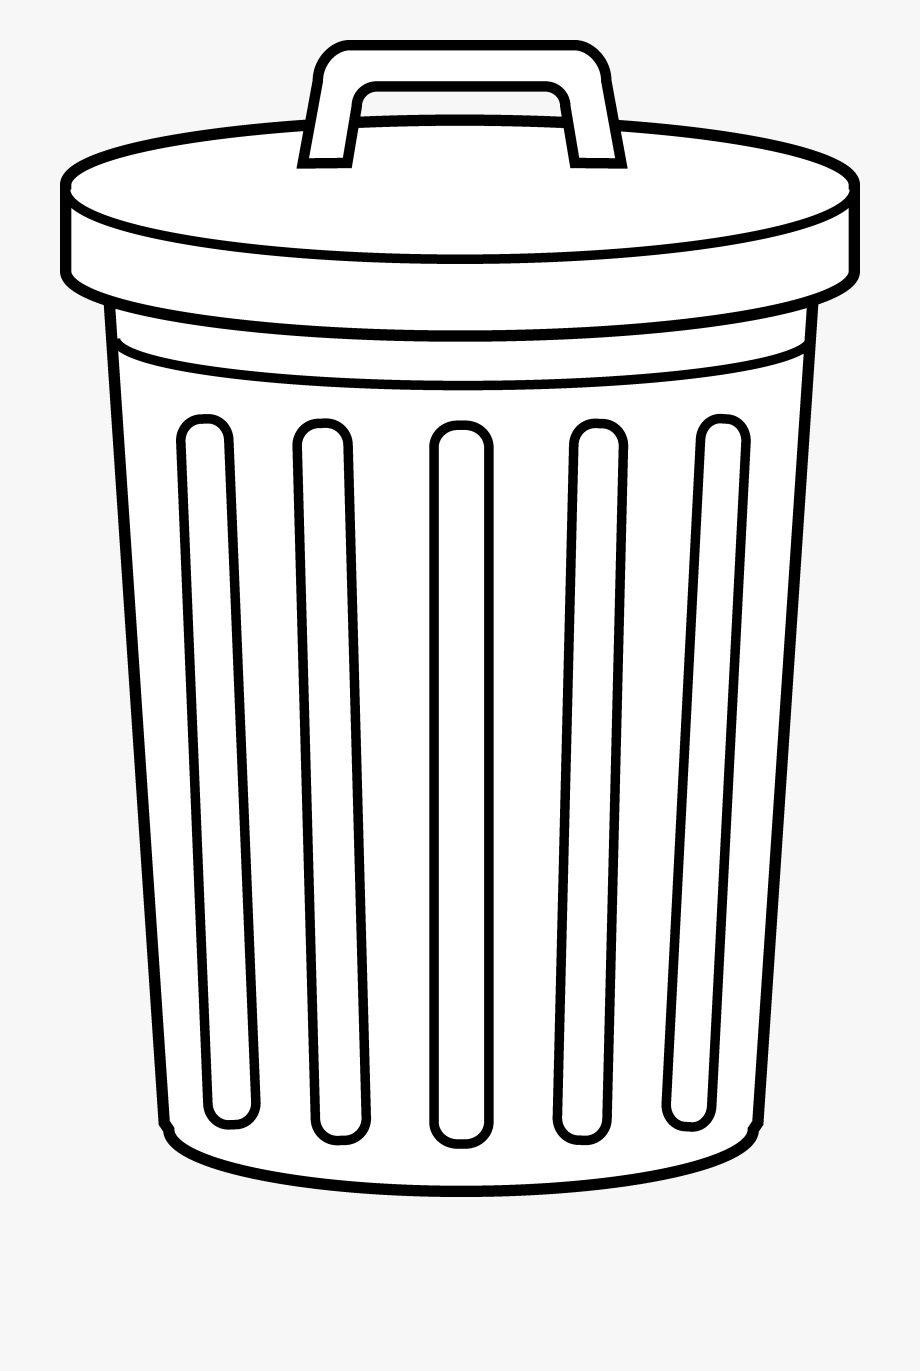 Awesome Free Pictures Of Trash Cans, Download Free.